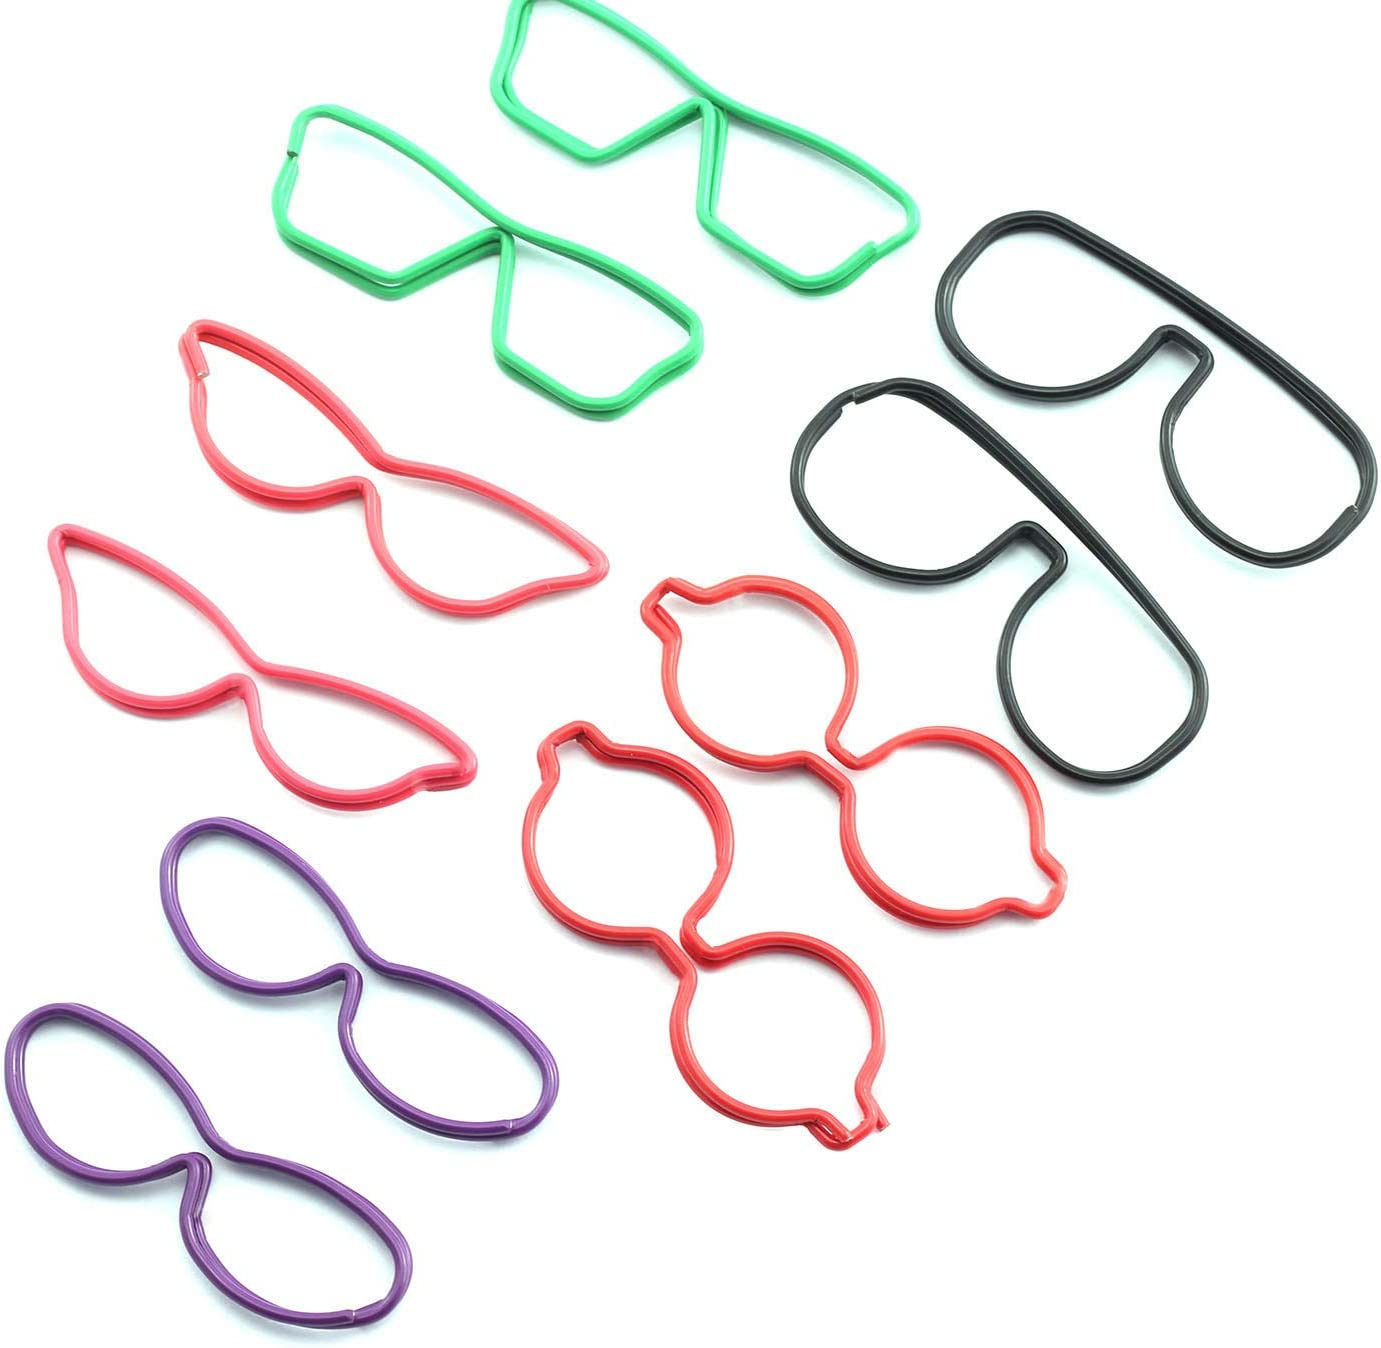 RuiLing 30PCS Glasses Shape Paper Clip Metal Wire Binder Multi-Purpose Stationary Home Office School Supply Colorful Creative Colorful DIY Hollow Out Bookmark